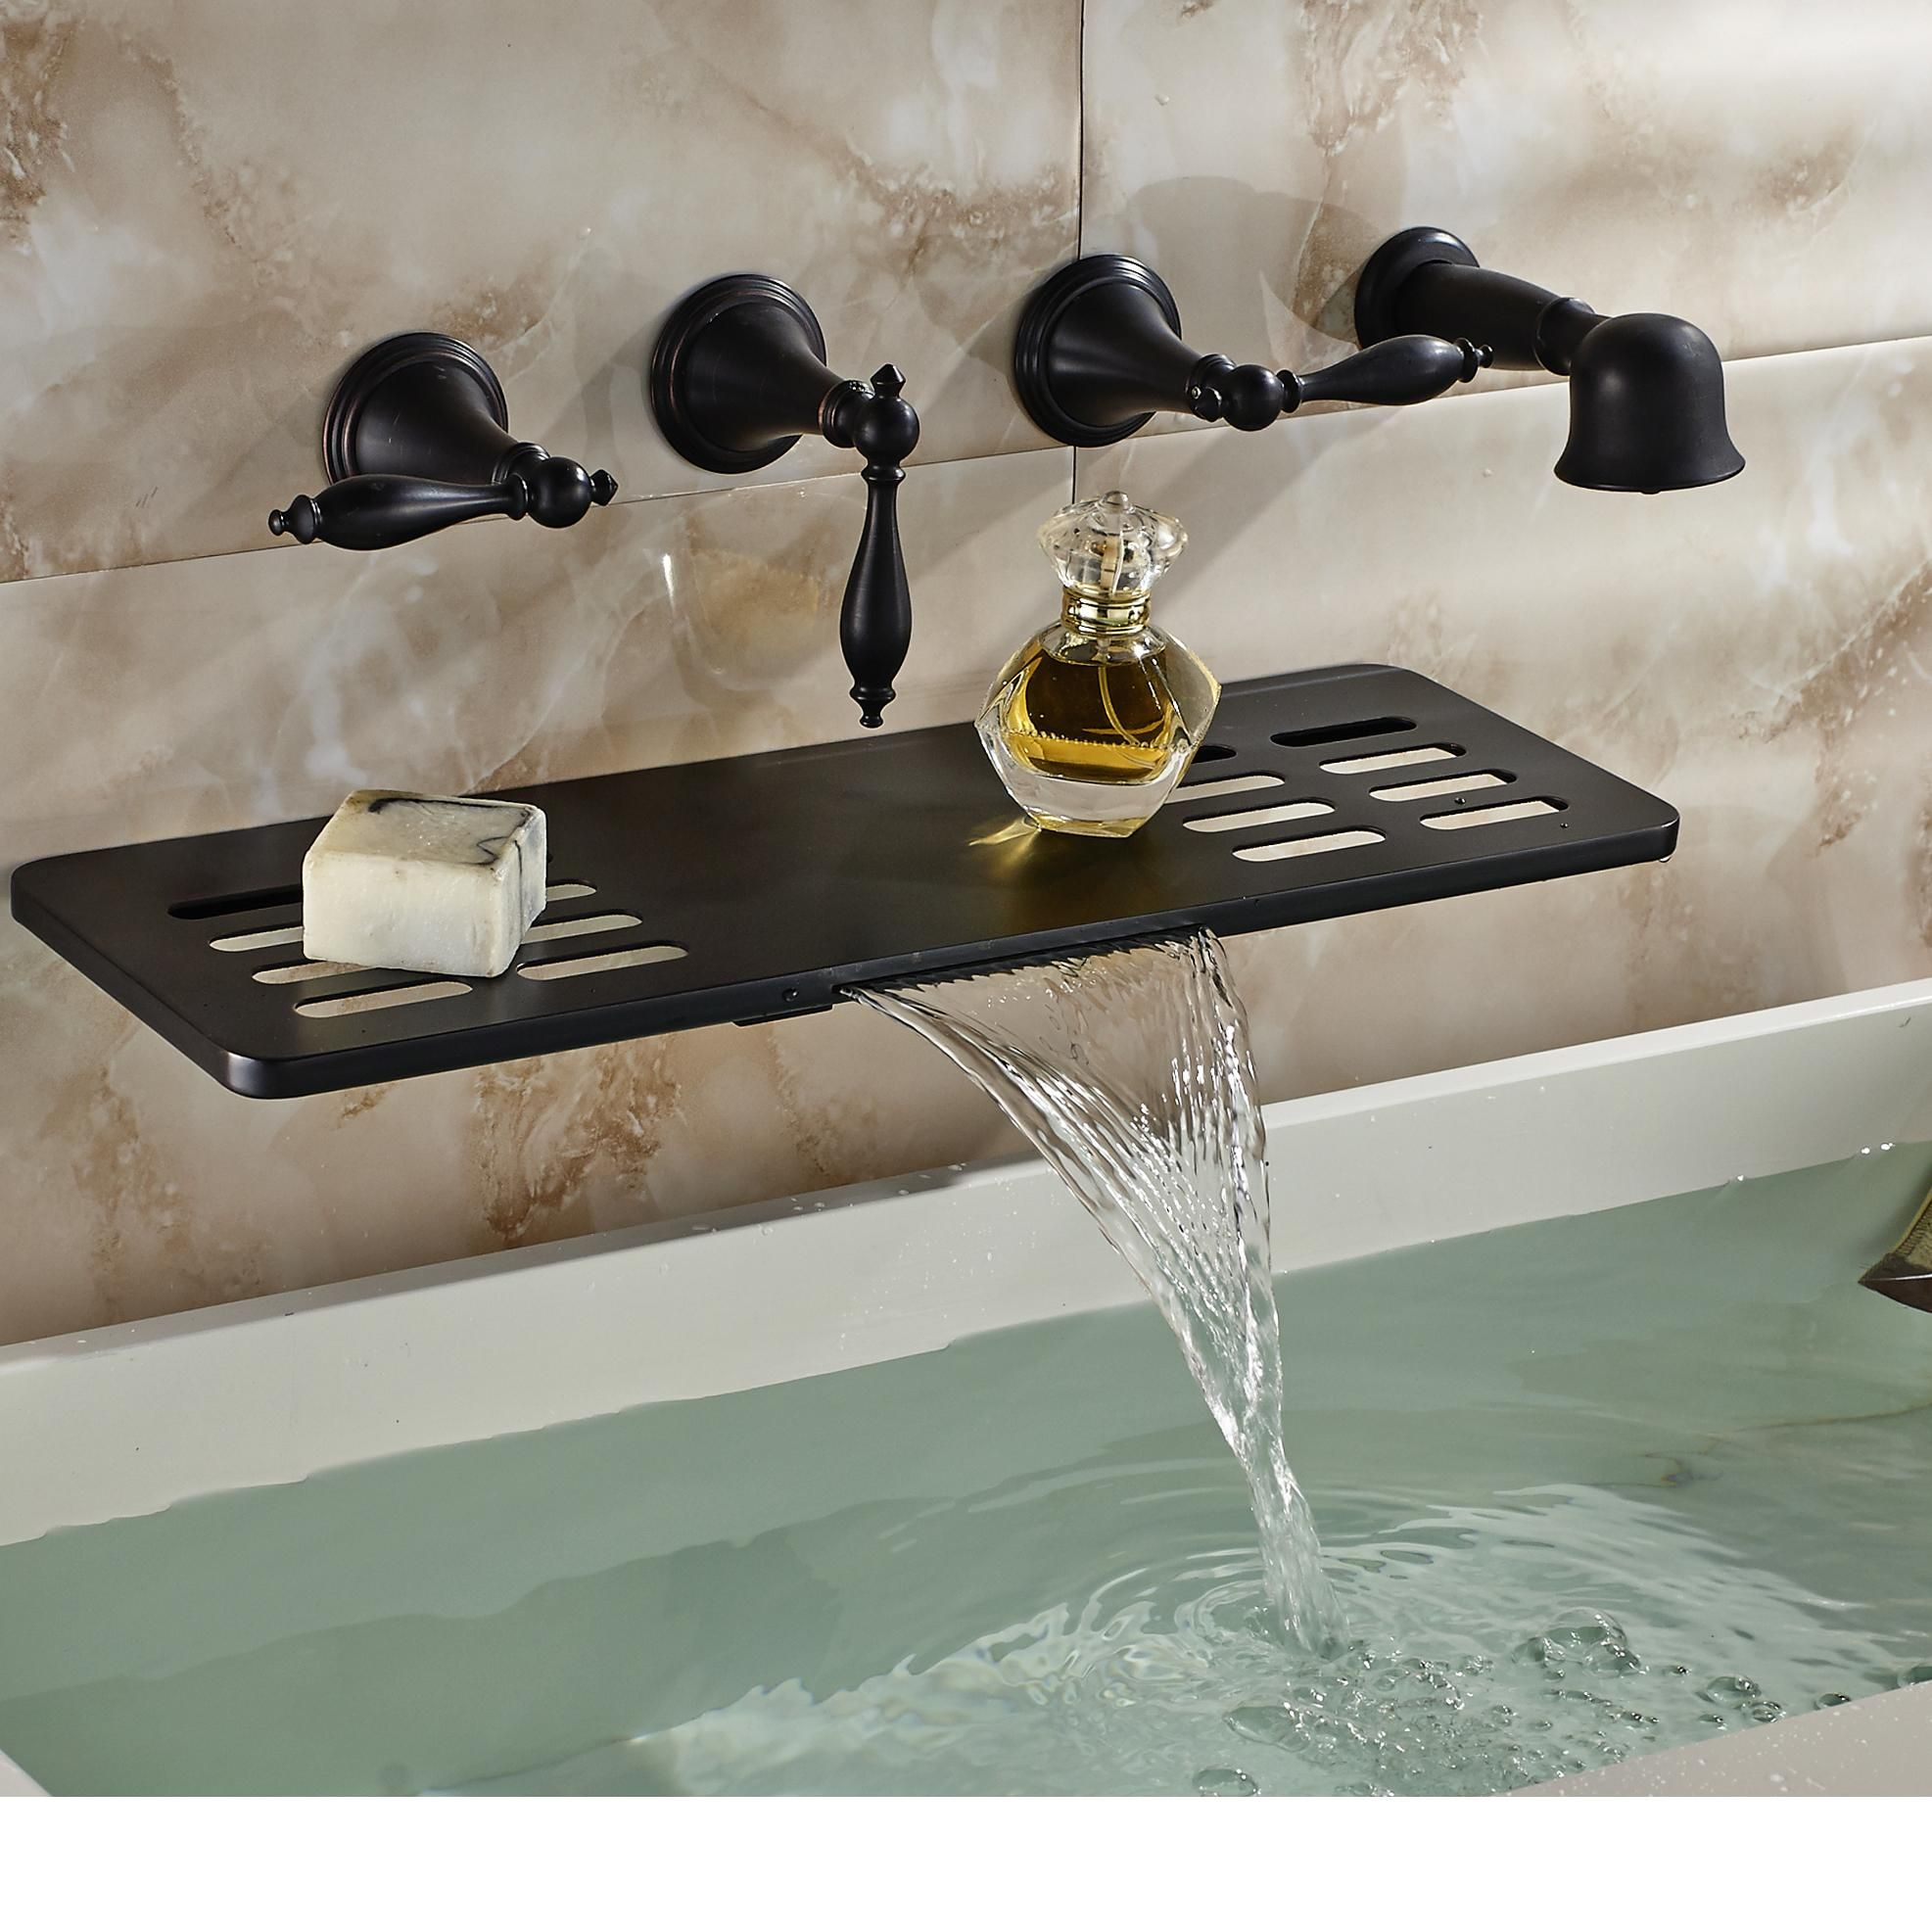 most innovation faucet divine waterfall faucets bronze widespread grohe kitchen vessel bathroom